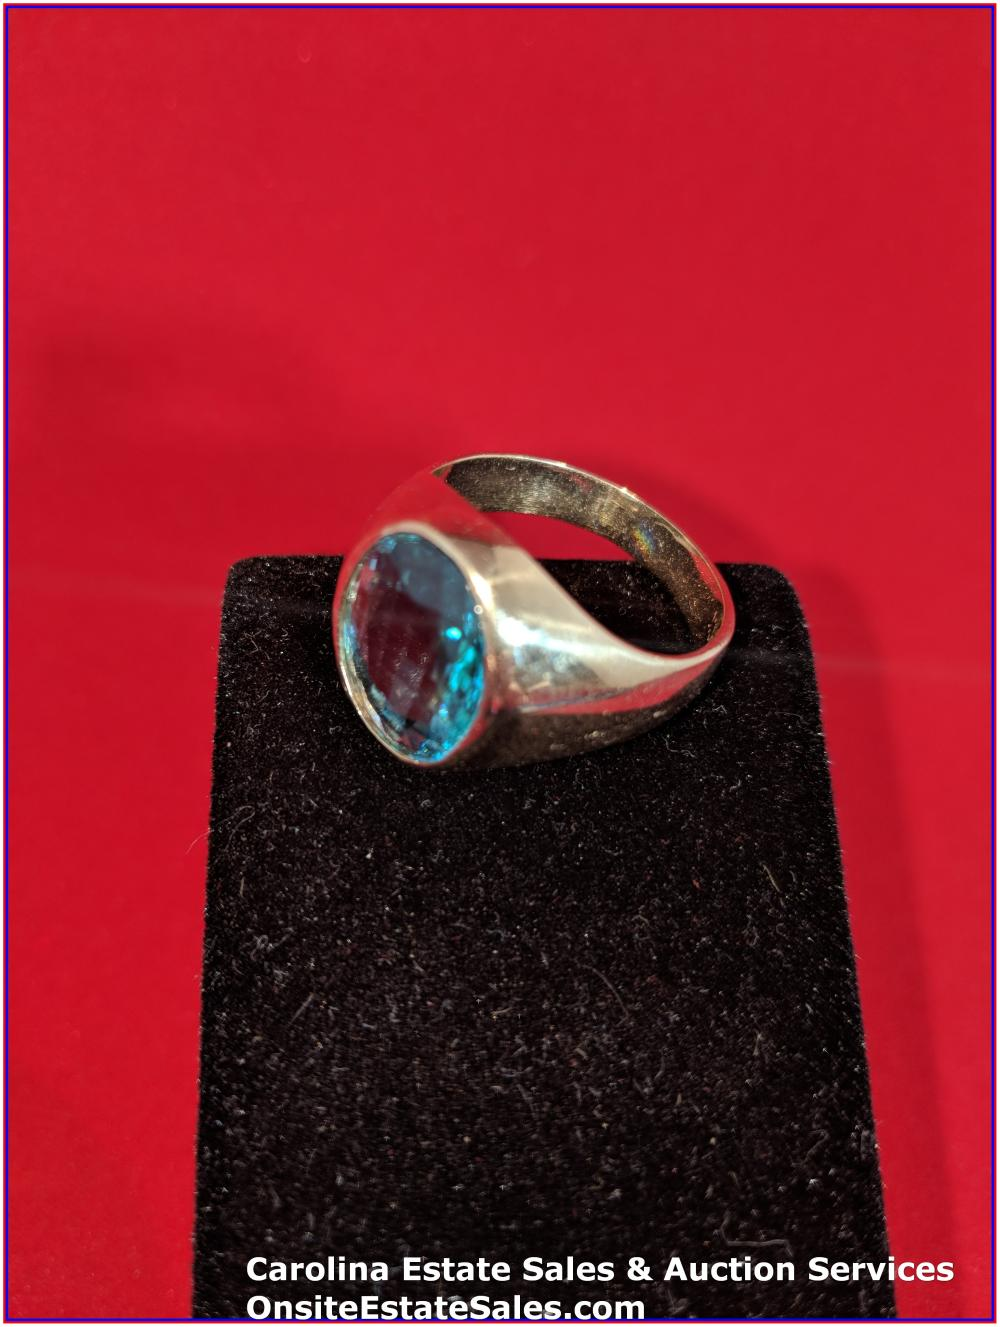 10K Gem Ring Gold 9 Grams Total Weight Includes Stone